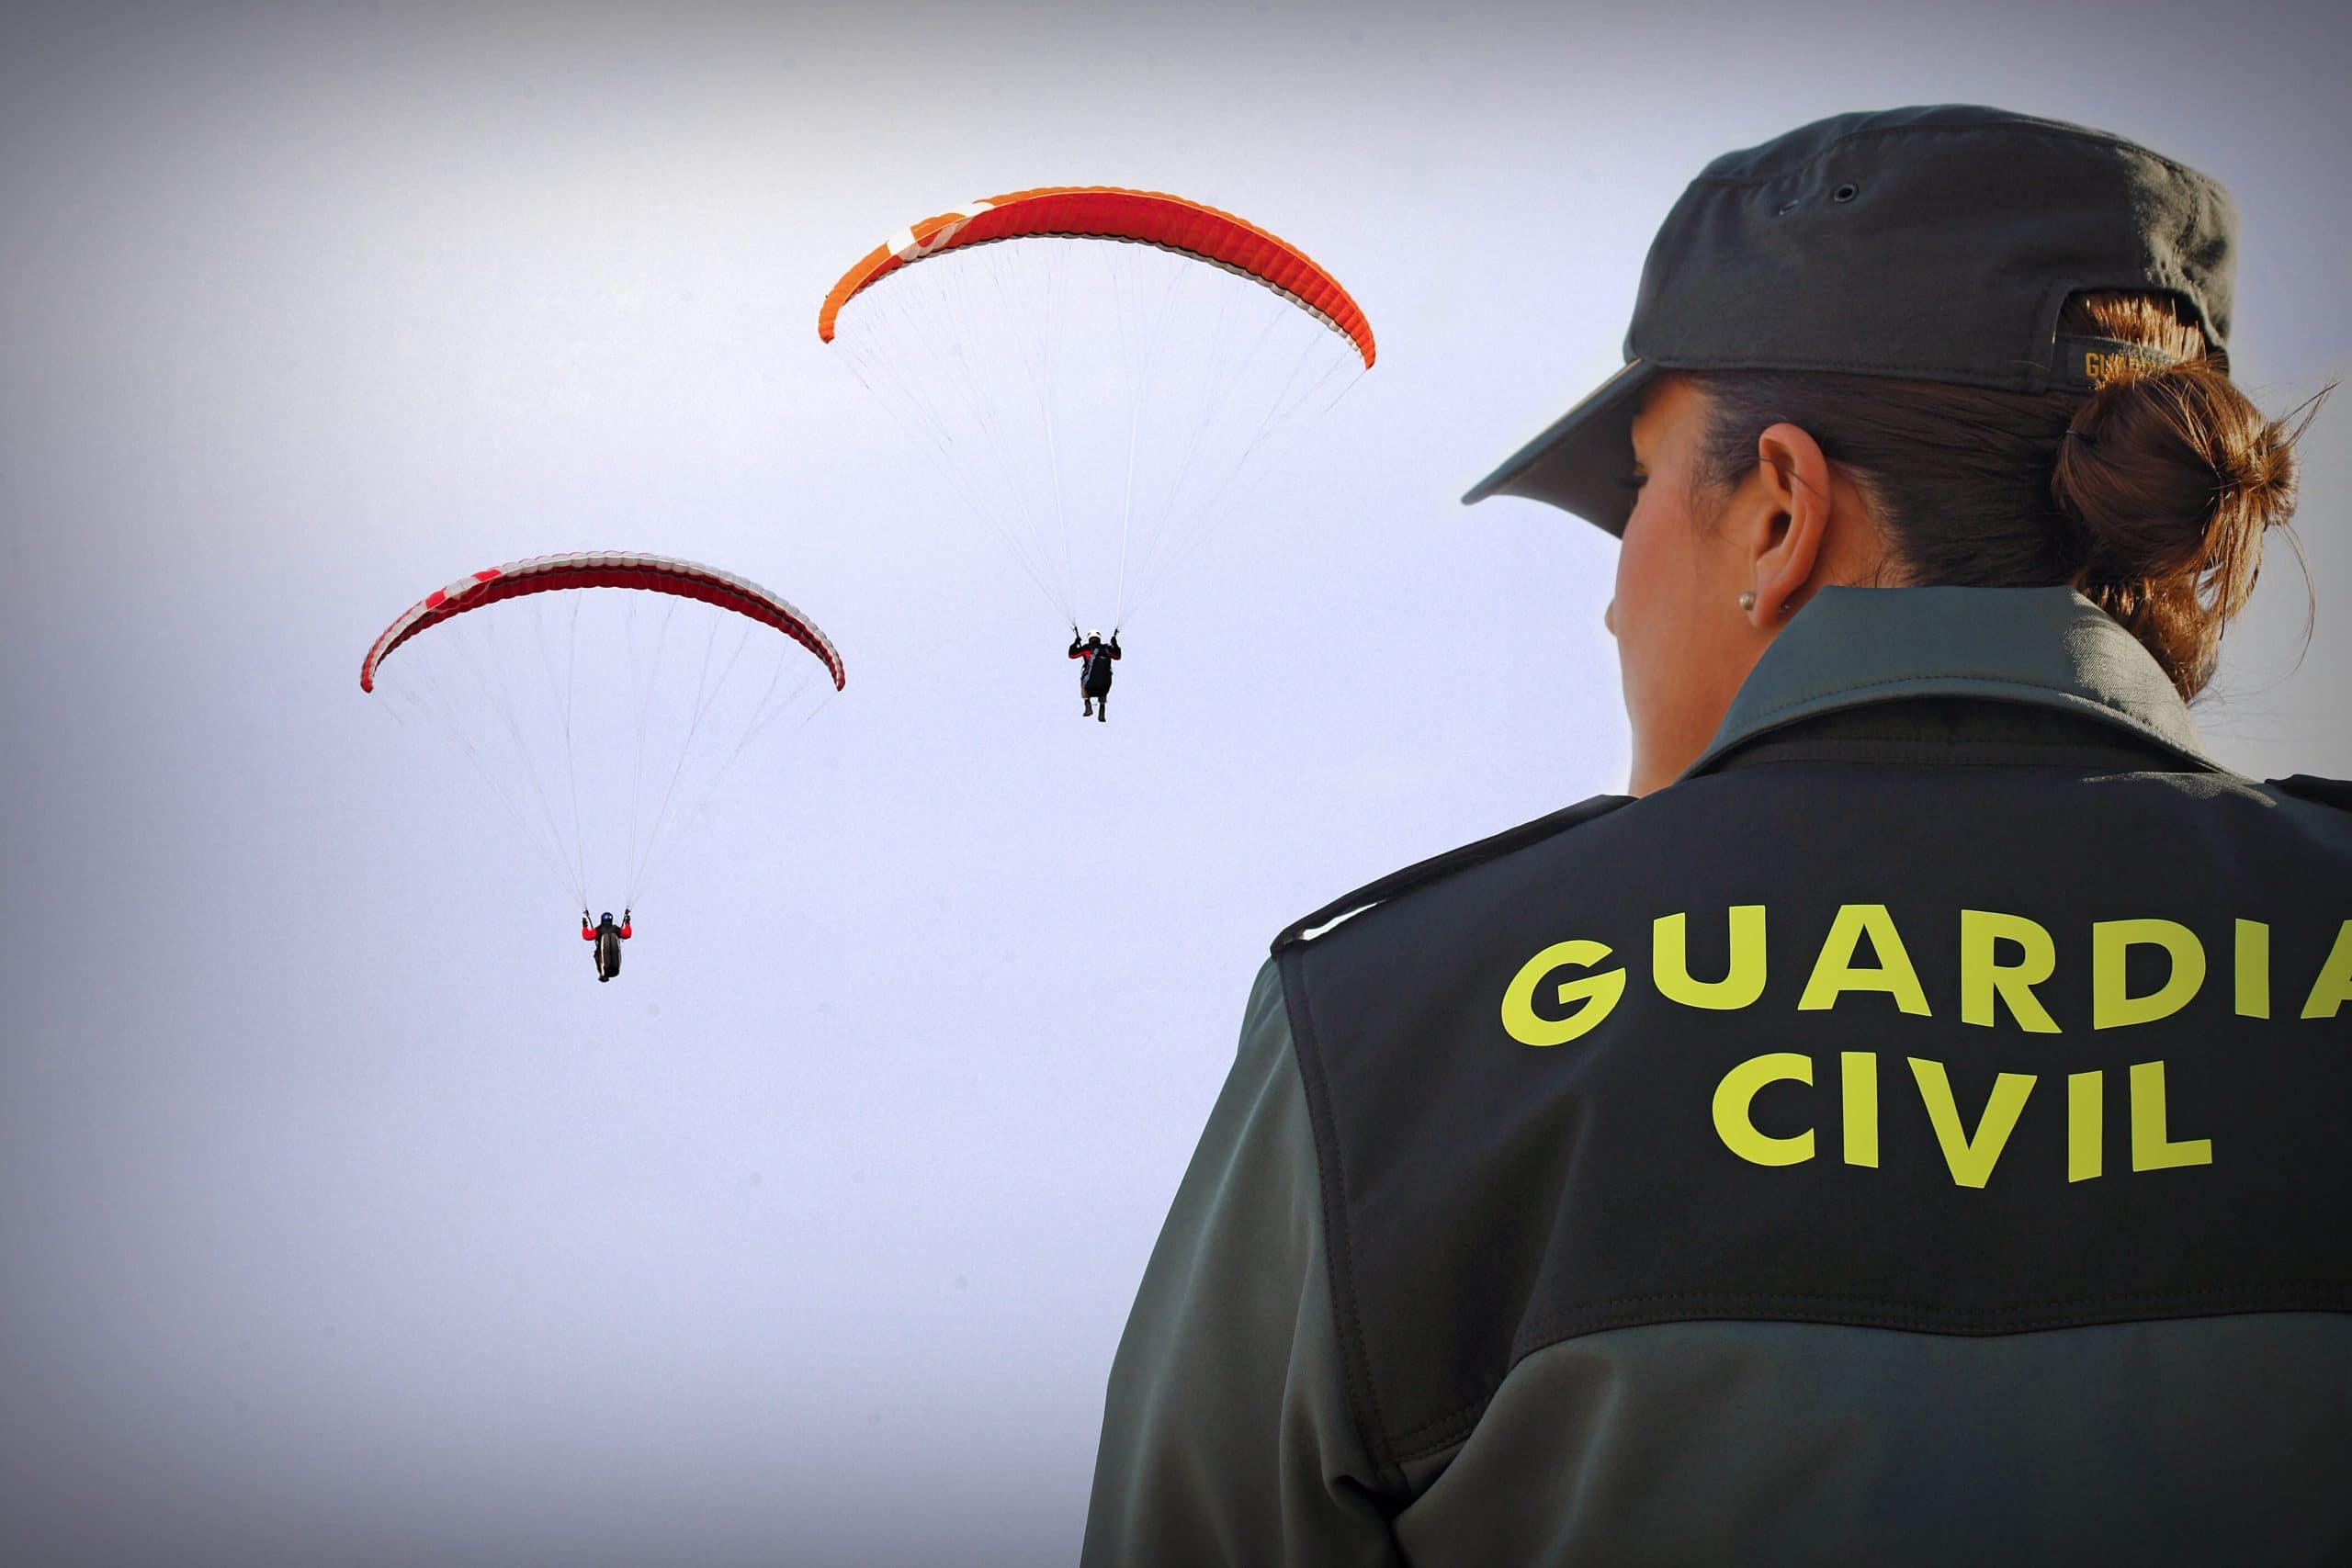 oposiciones para ser guardia civil